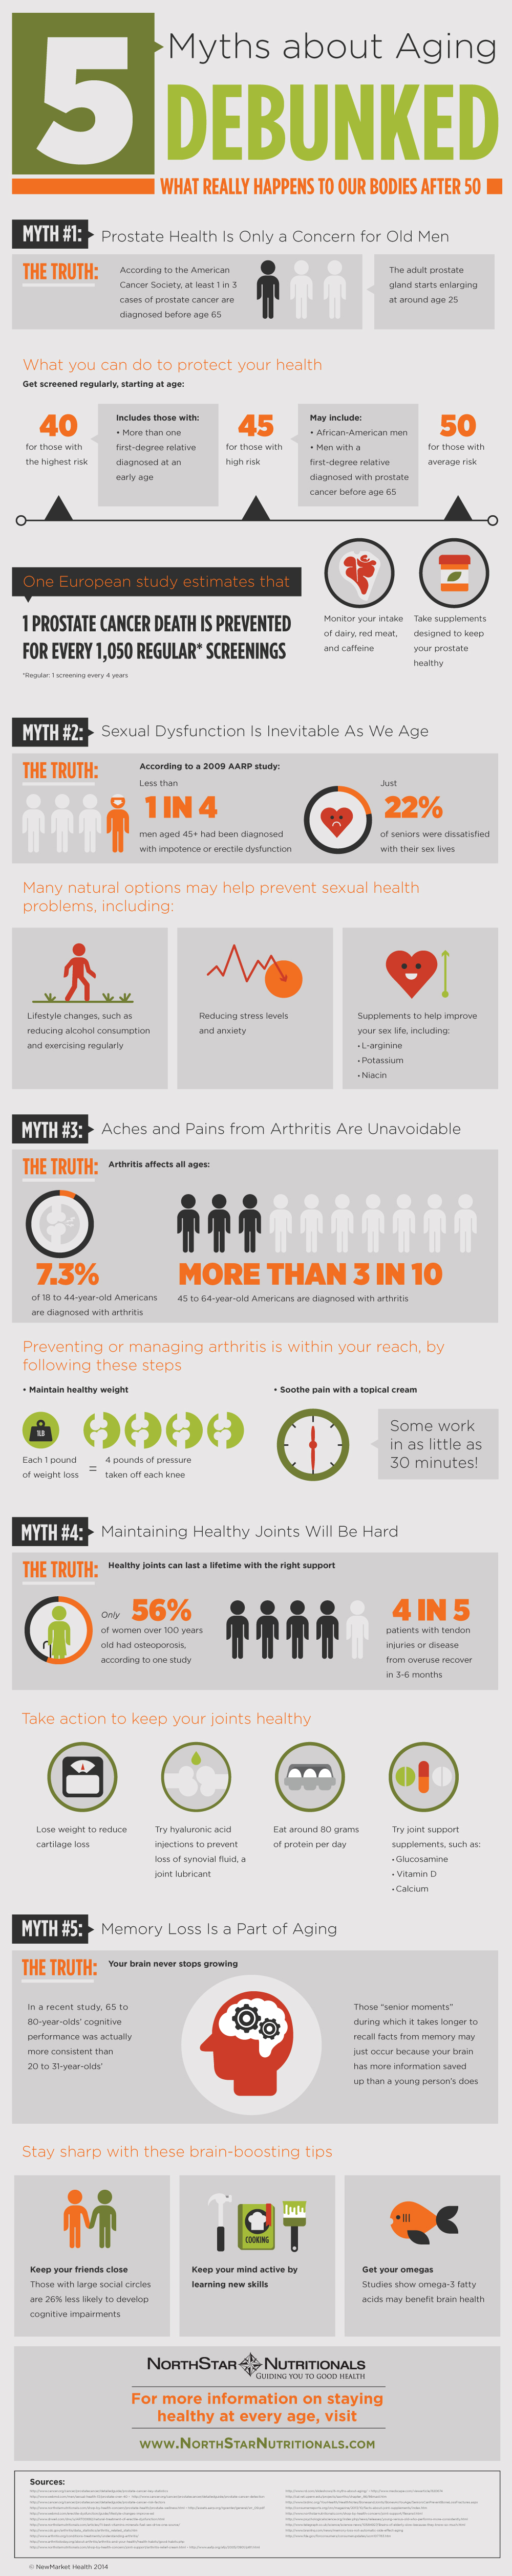 5-Aging-Myths-Debunked-Infographic